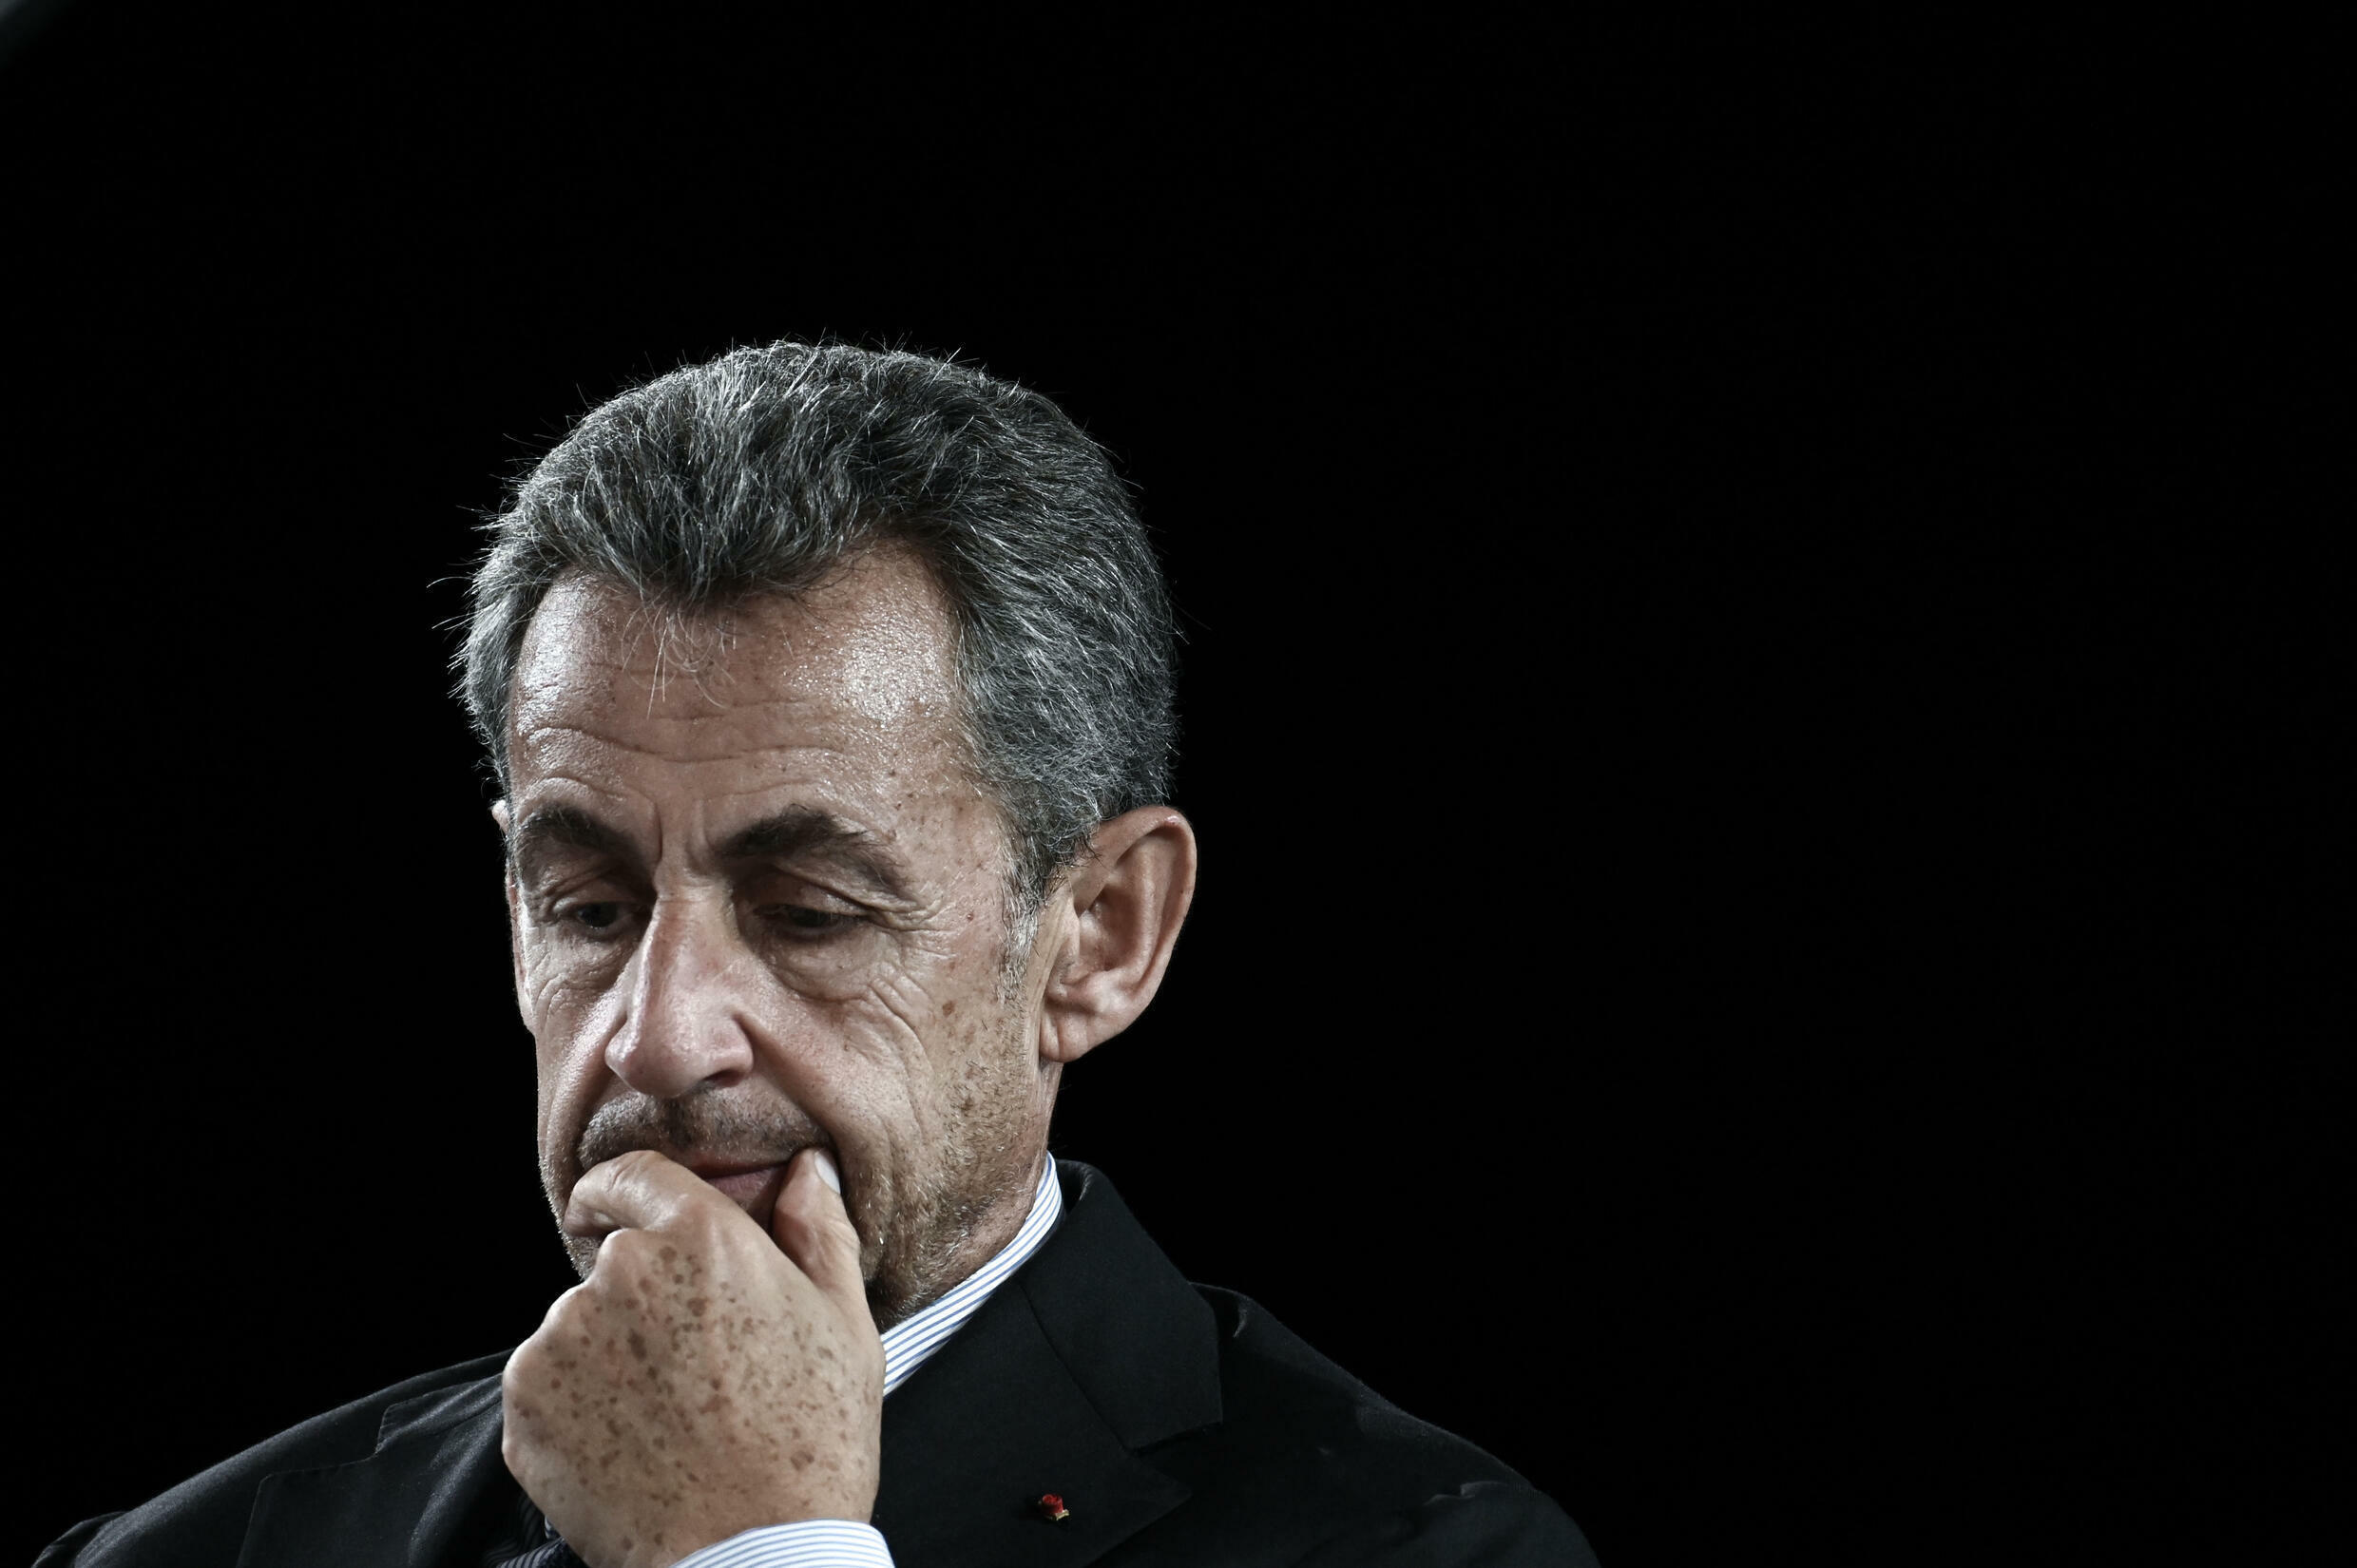 Sarkozy had said he would not testify at the trial